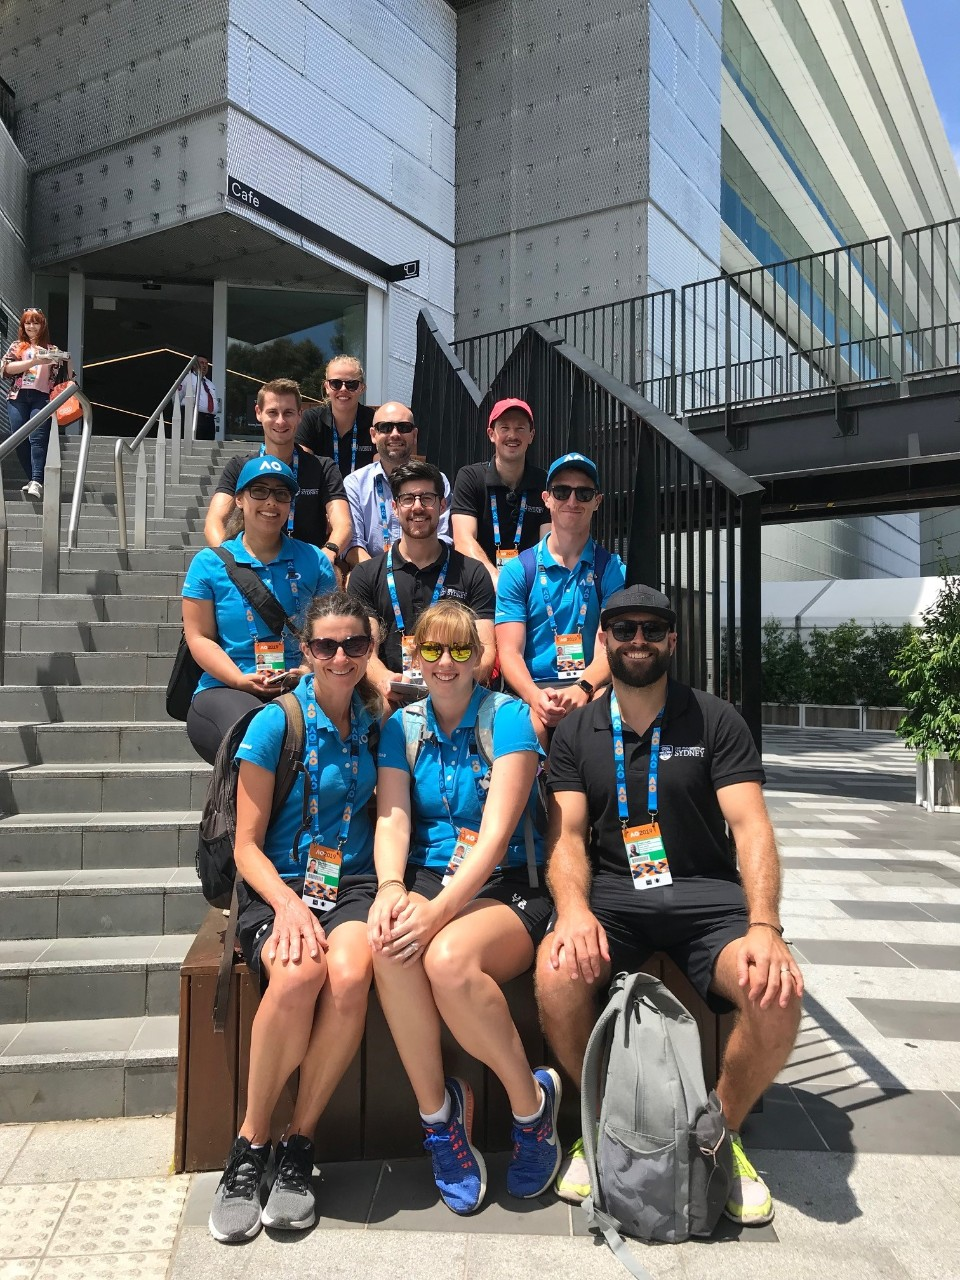 Staff from the Thermal Ergonomics Lab at the 2019 Australian Open